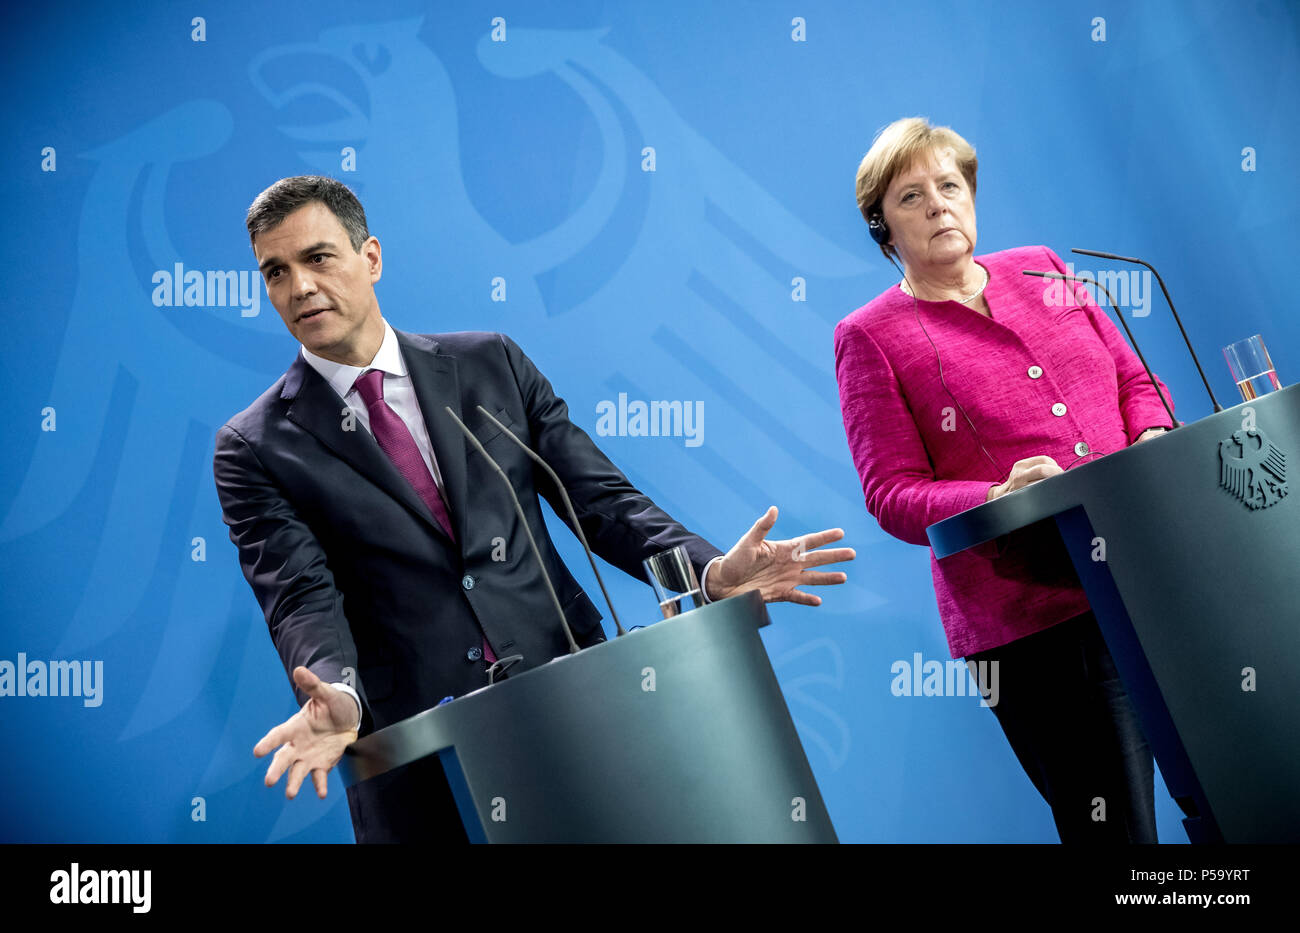 Germany, Berlin. 26th June, 2018. German chancellor Angela Merkel (Christian Democratic Union - CDU) stands next to the Spanish head of state Pedro Sanchez during a press conference. They met for bilateral talks at the federal chancellery in Berlin. Credit: Michael Kappeler/dpa/Alamy Live News - Stock Image